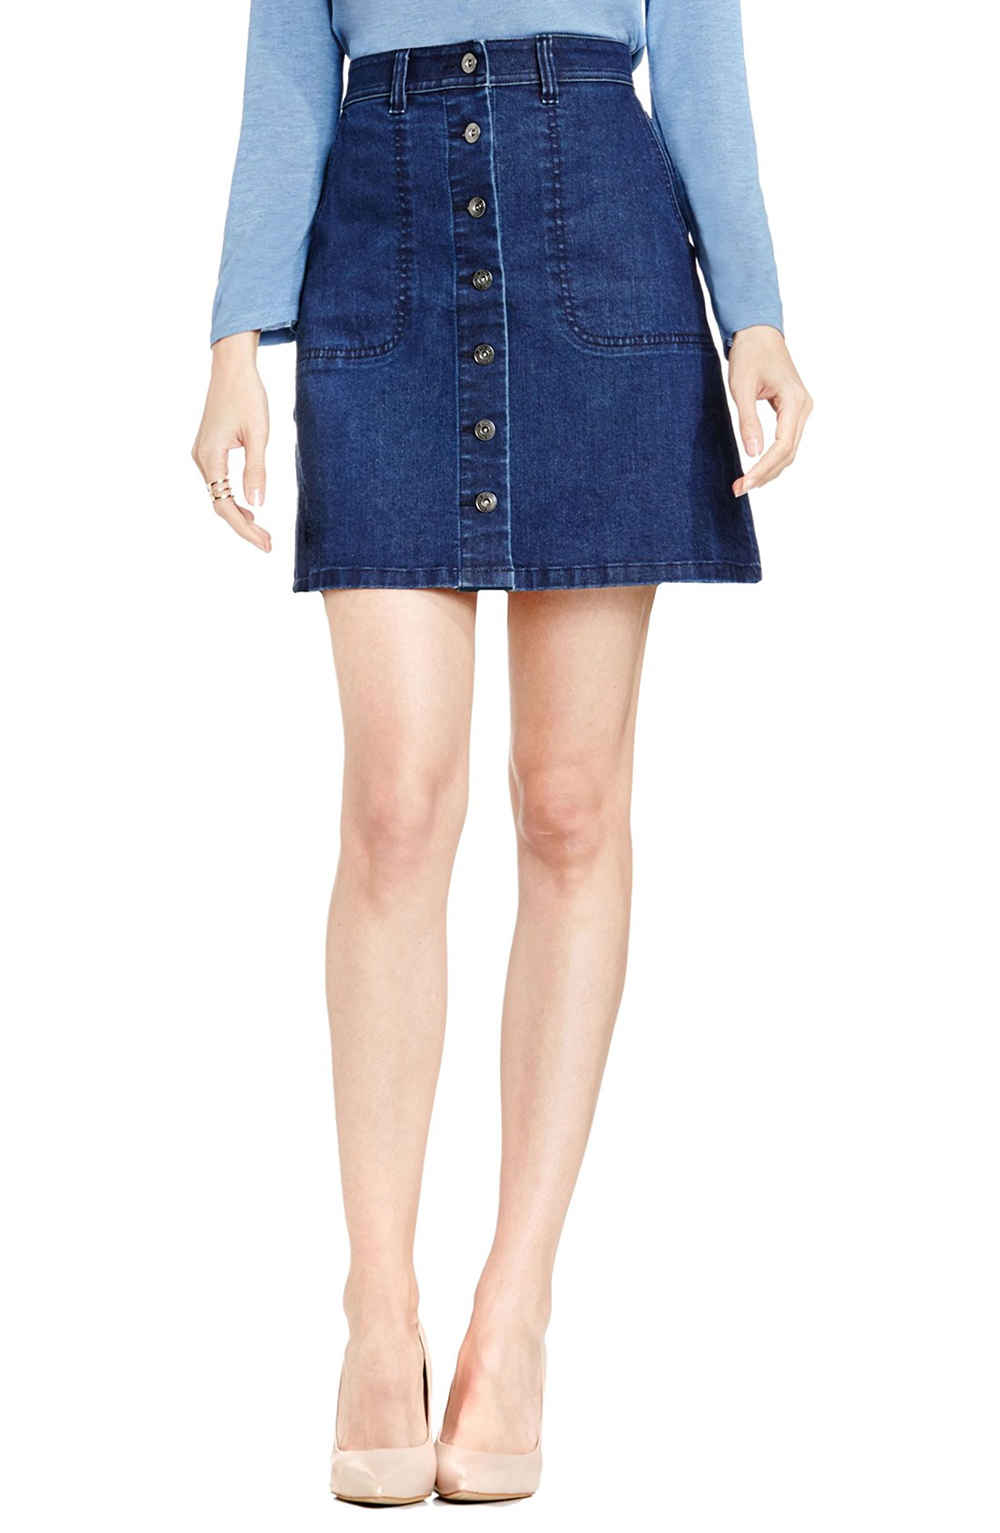 Two by Vince Camuto A-Line Denim Miniskirt - The Perfect A-line Mini Skirt